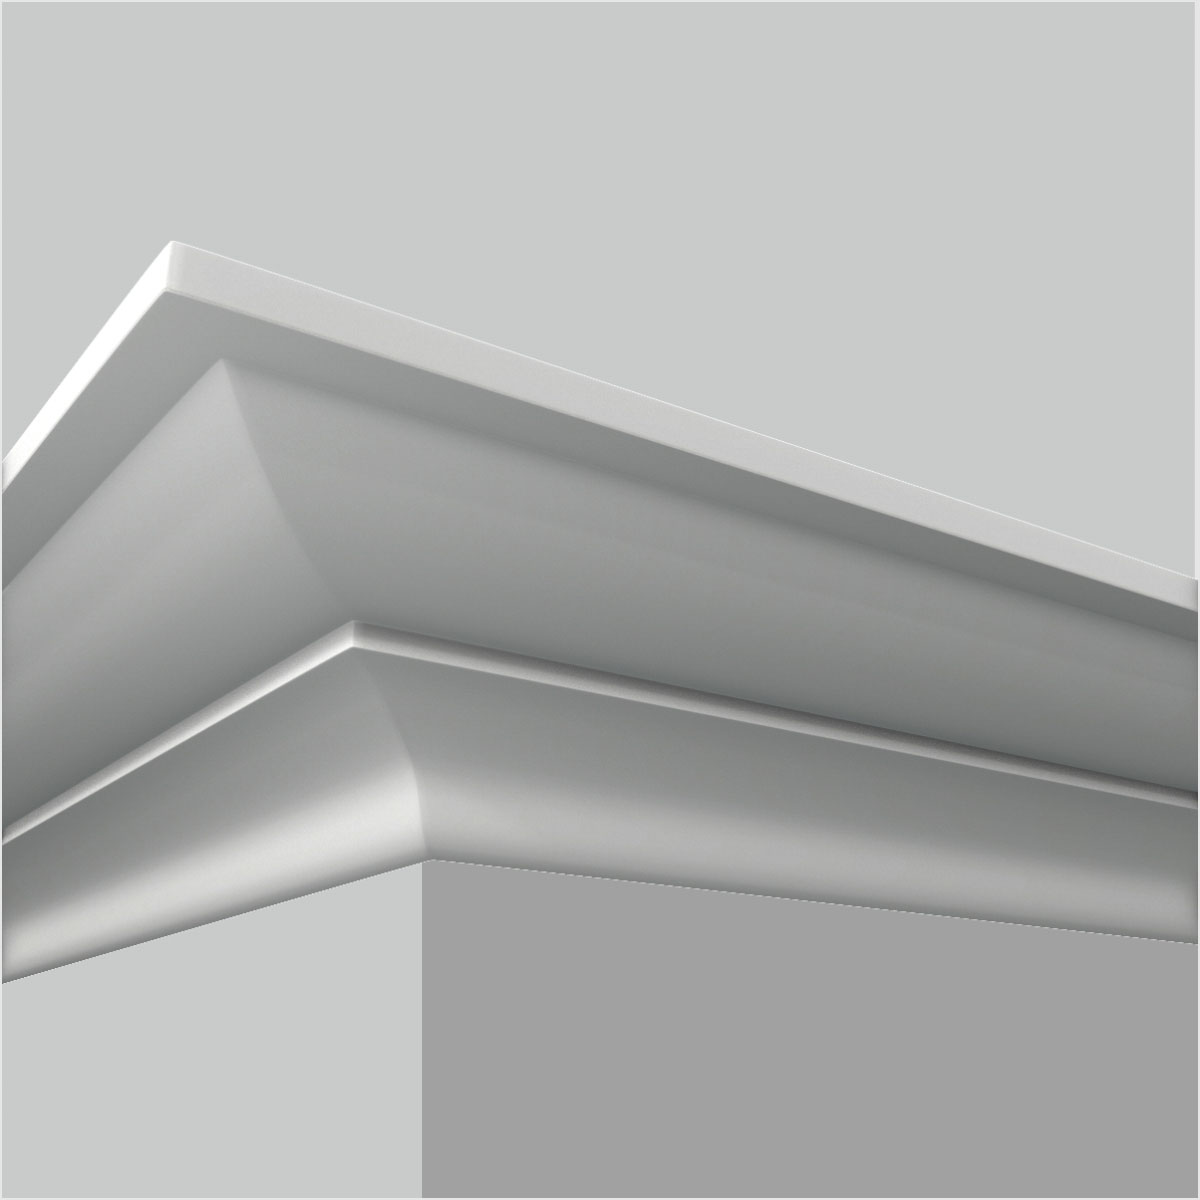 H&K Goodware PU crown mouldings wholesale